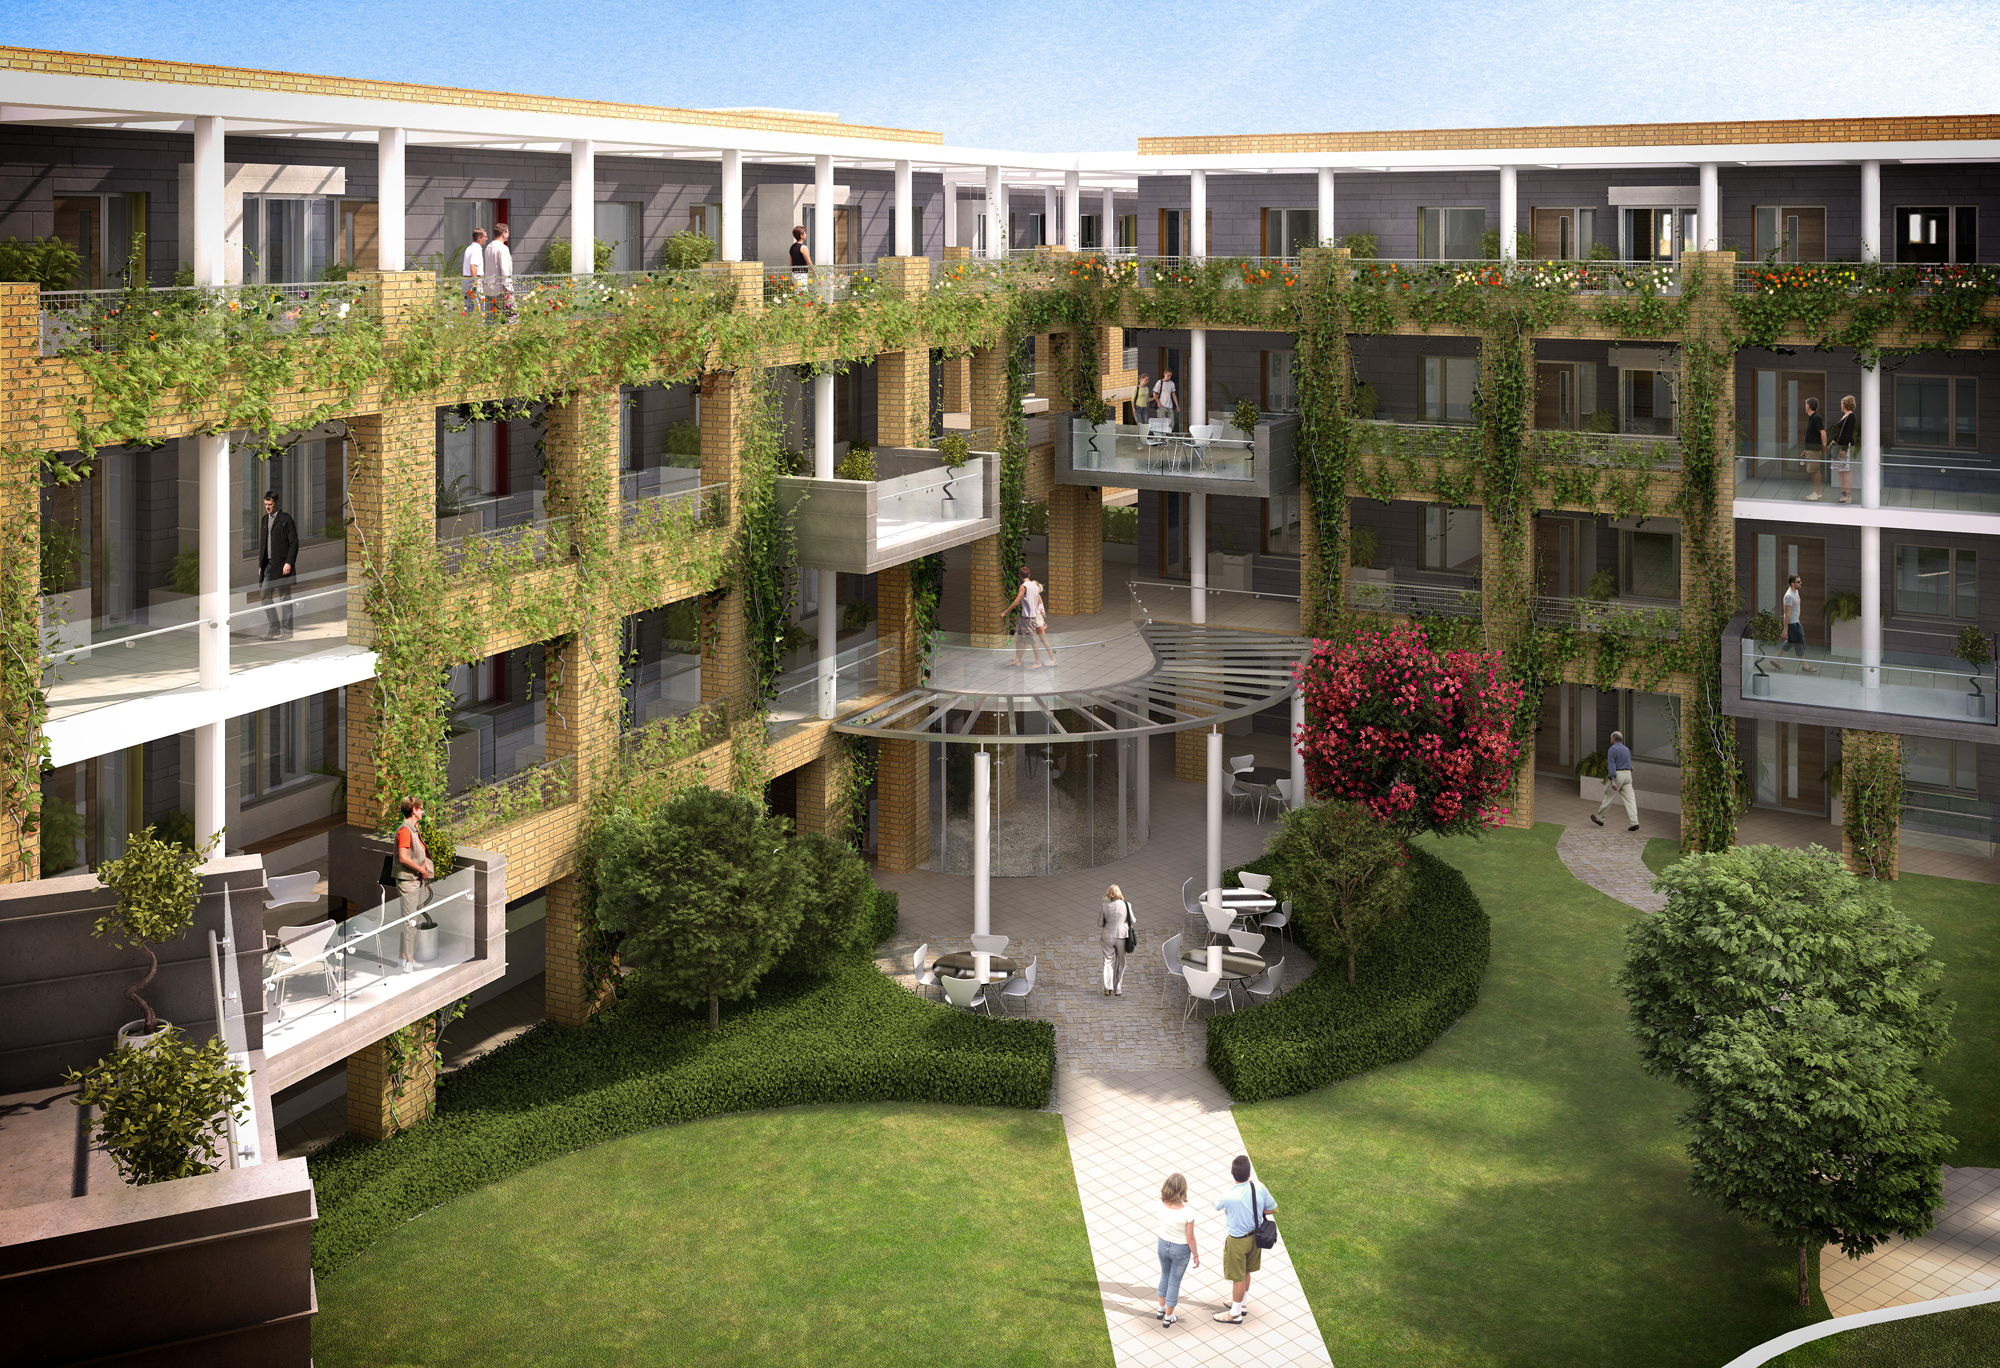 New homes cater for retirees wishing to stay in London